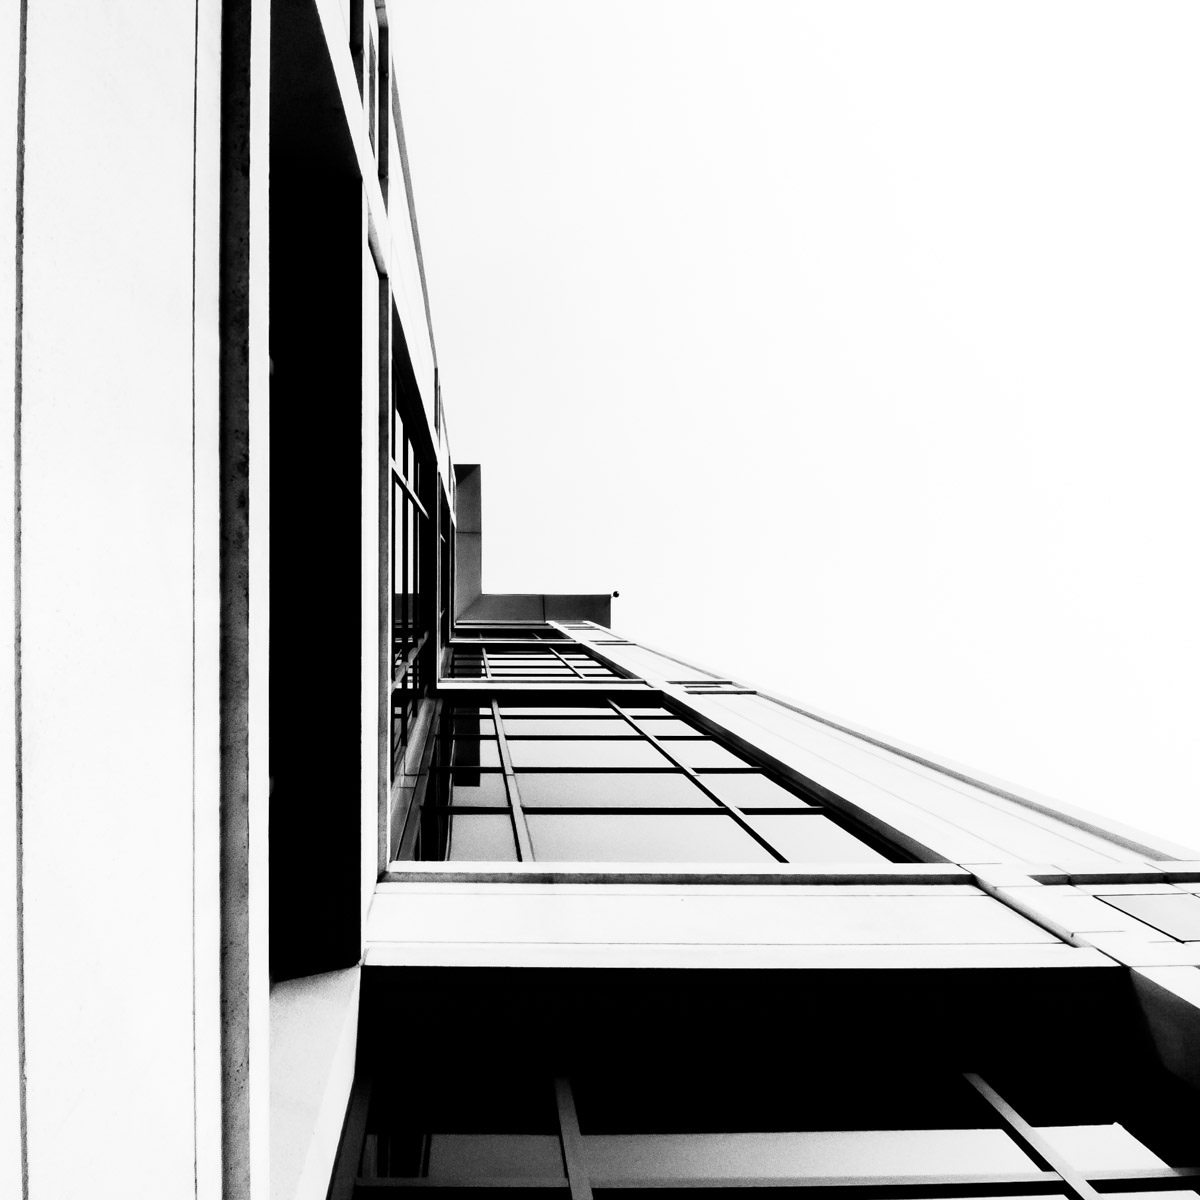 The edge of the Sterling Commerce Building in Las Colinas, Irving, Texas.